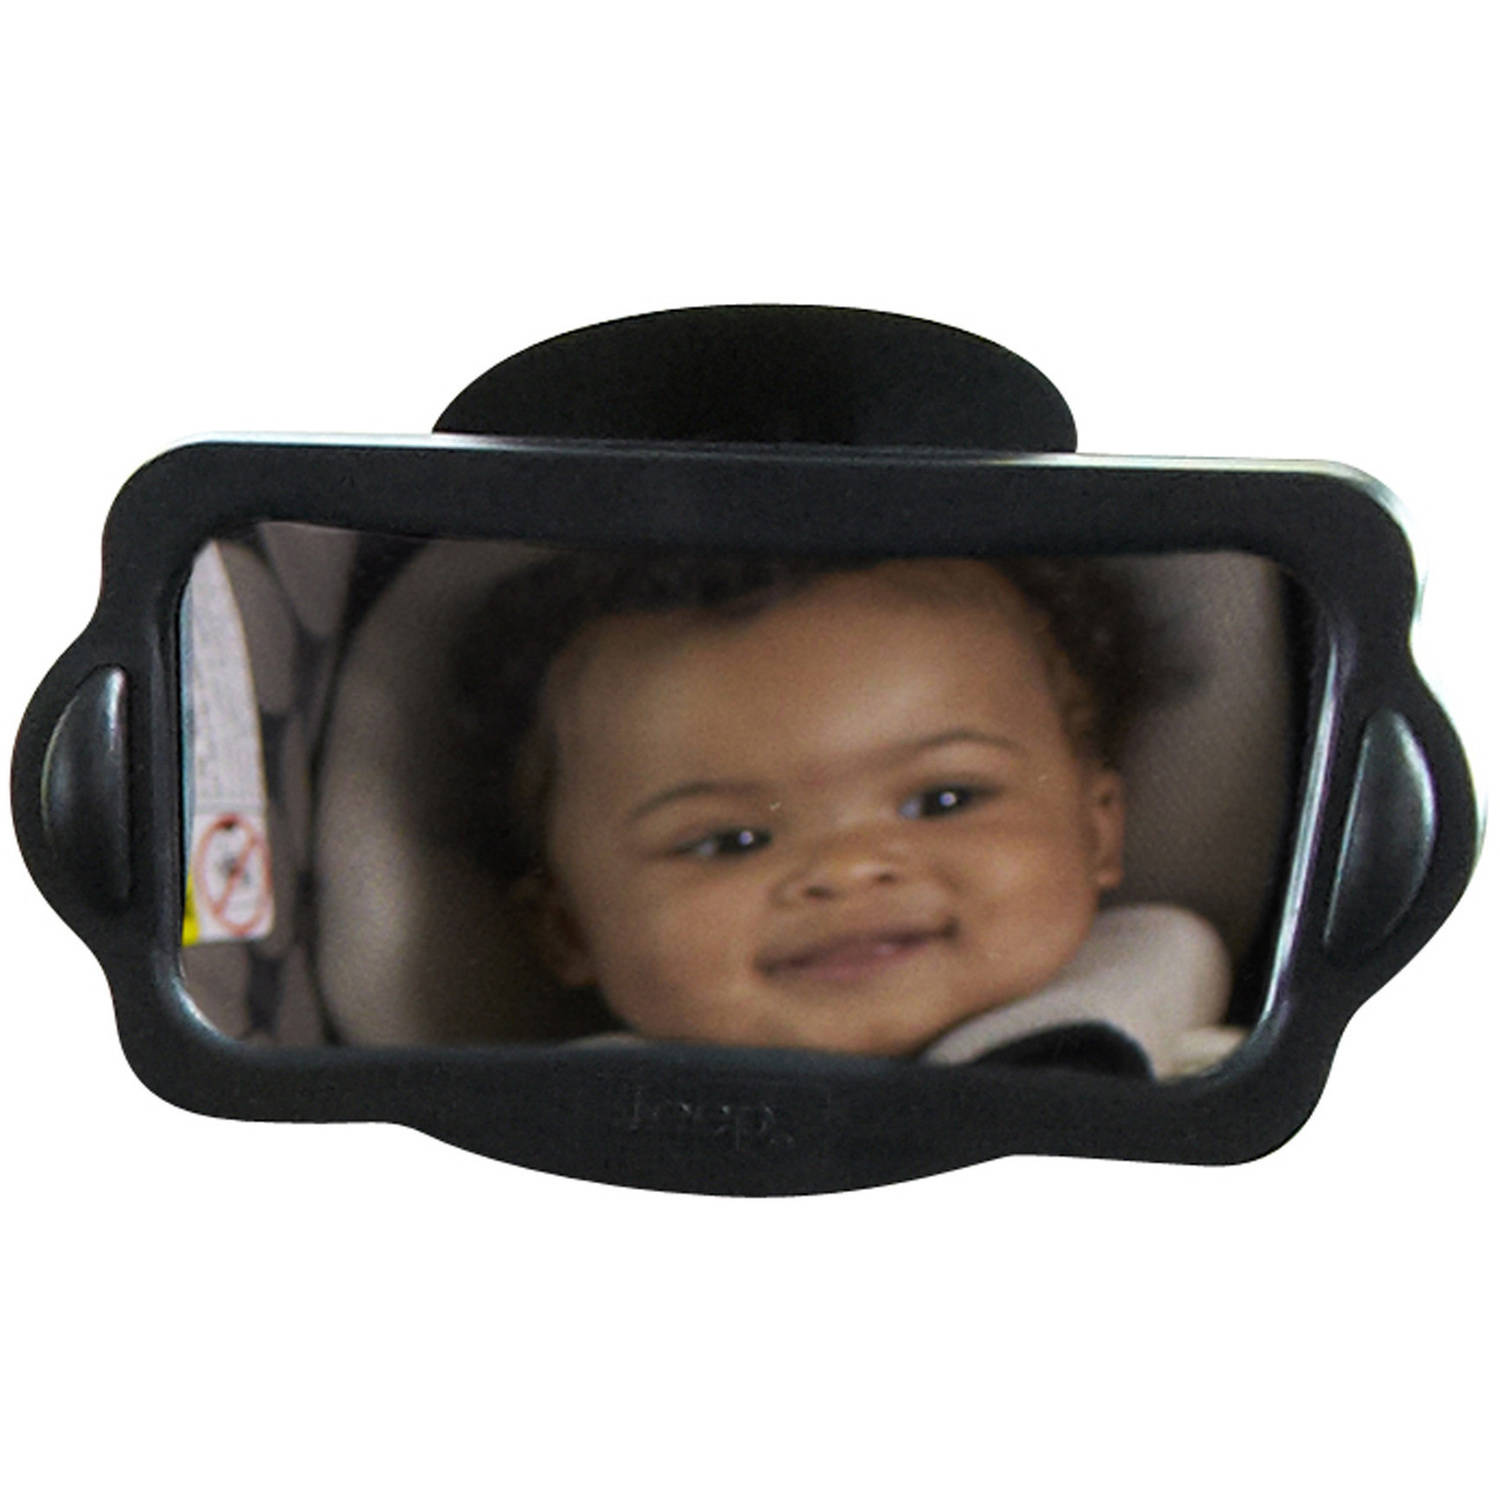 Nuby Baby View Mirror by Nuby